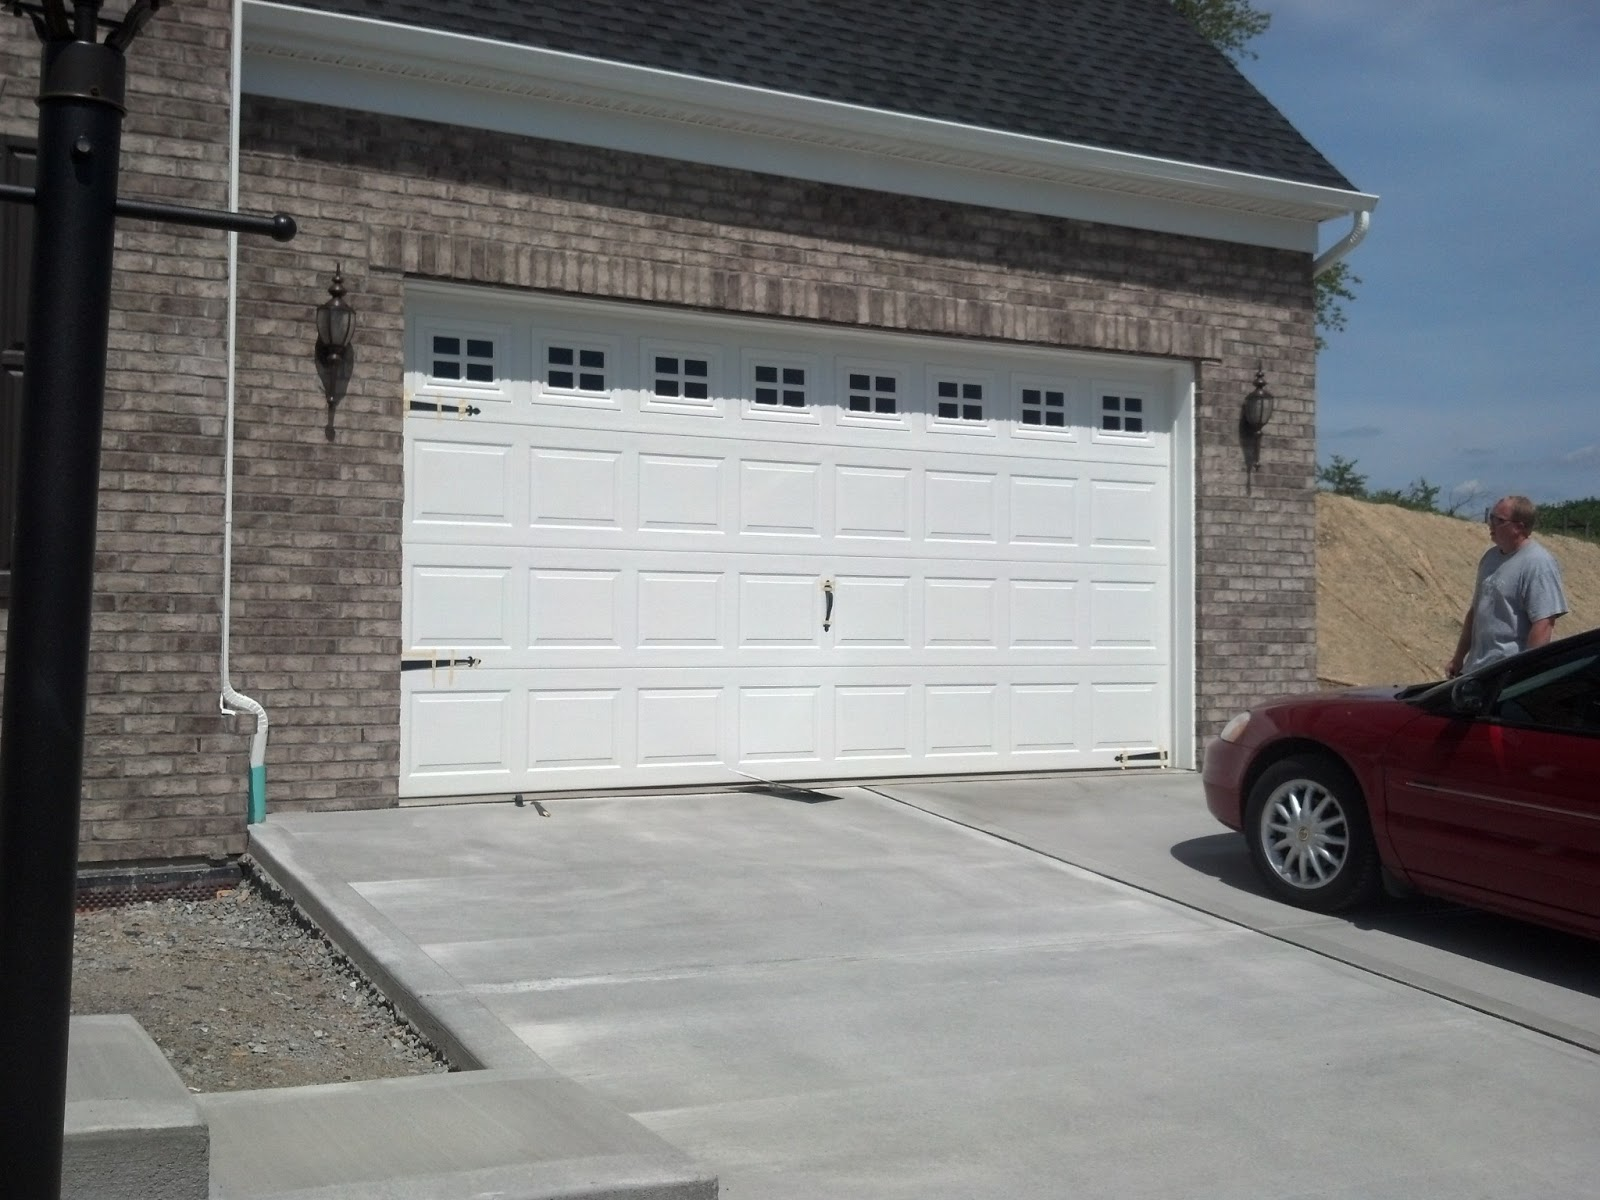 1200 #4F5C63 Savoy Ryan Home : Garage Door Decorative Hardware Dilemma Advice?? picture/photo Lowes Garage Doors Installed 38191600